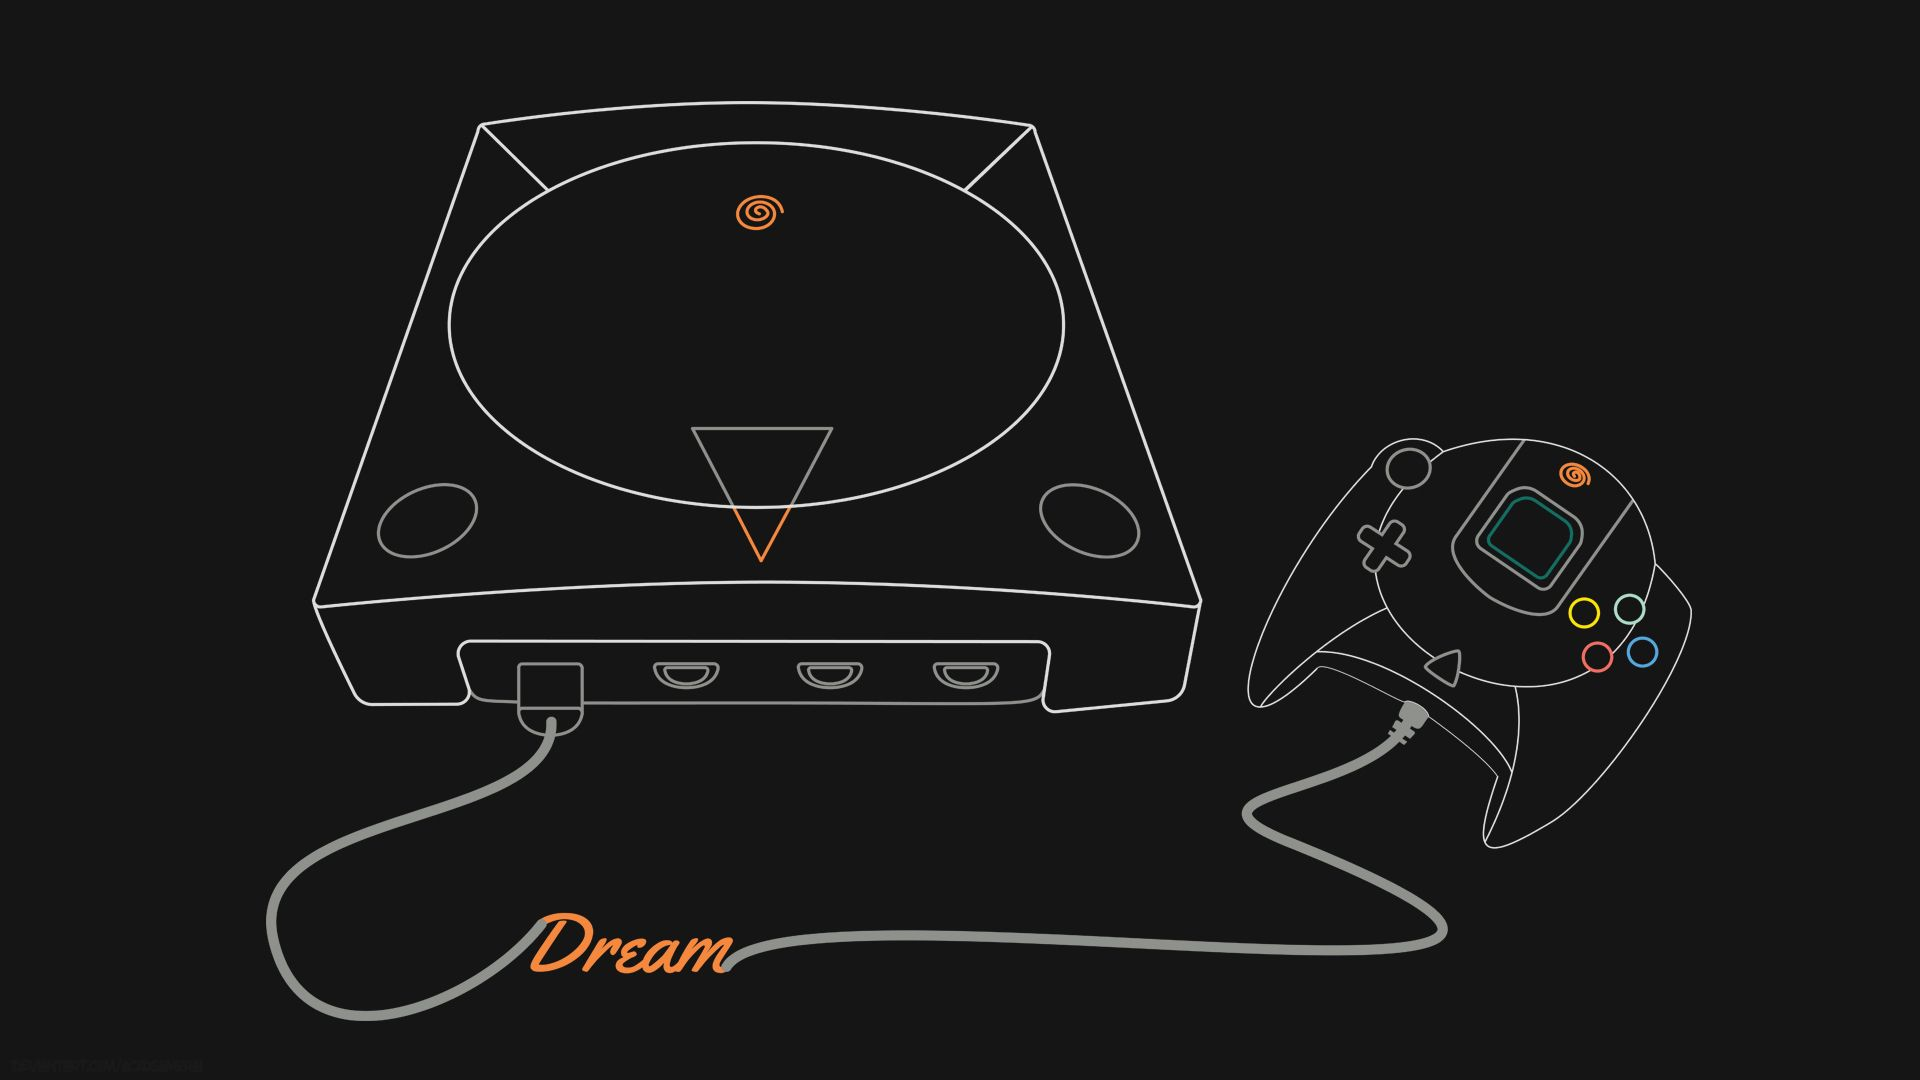 Sega Dreamcast Linework Investment Companies Best Investments Sega Dreamcast